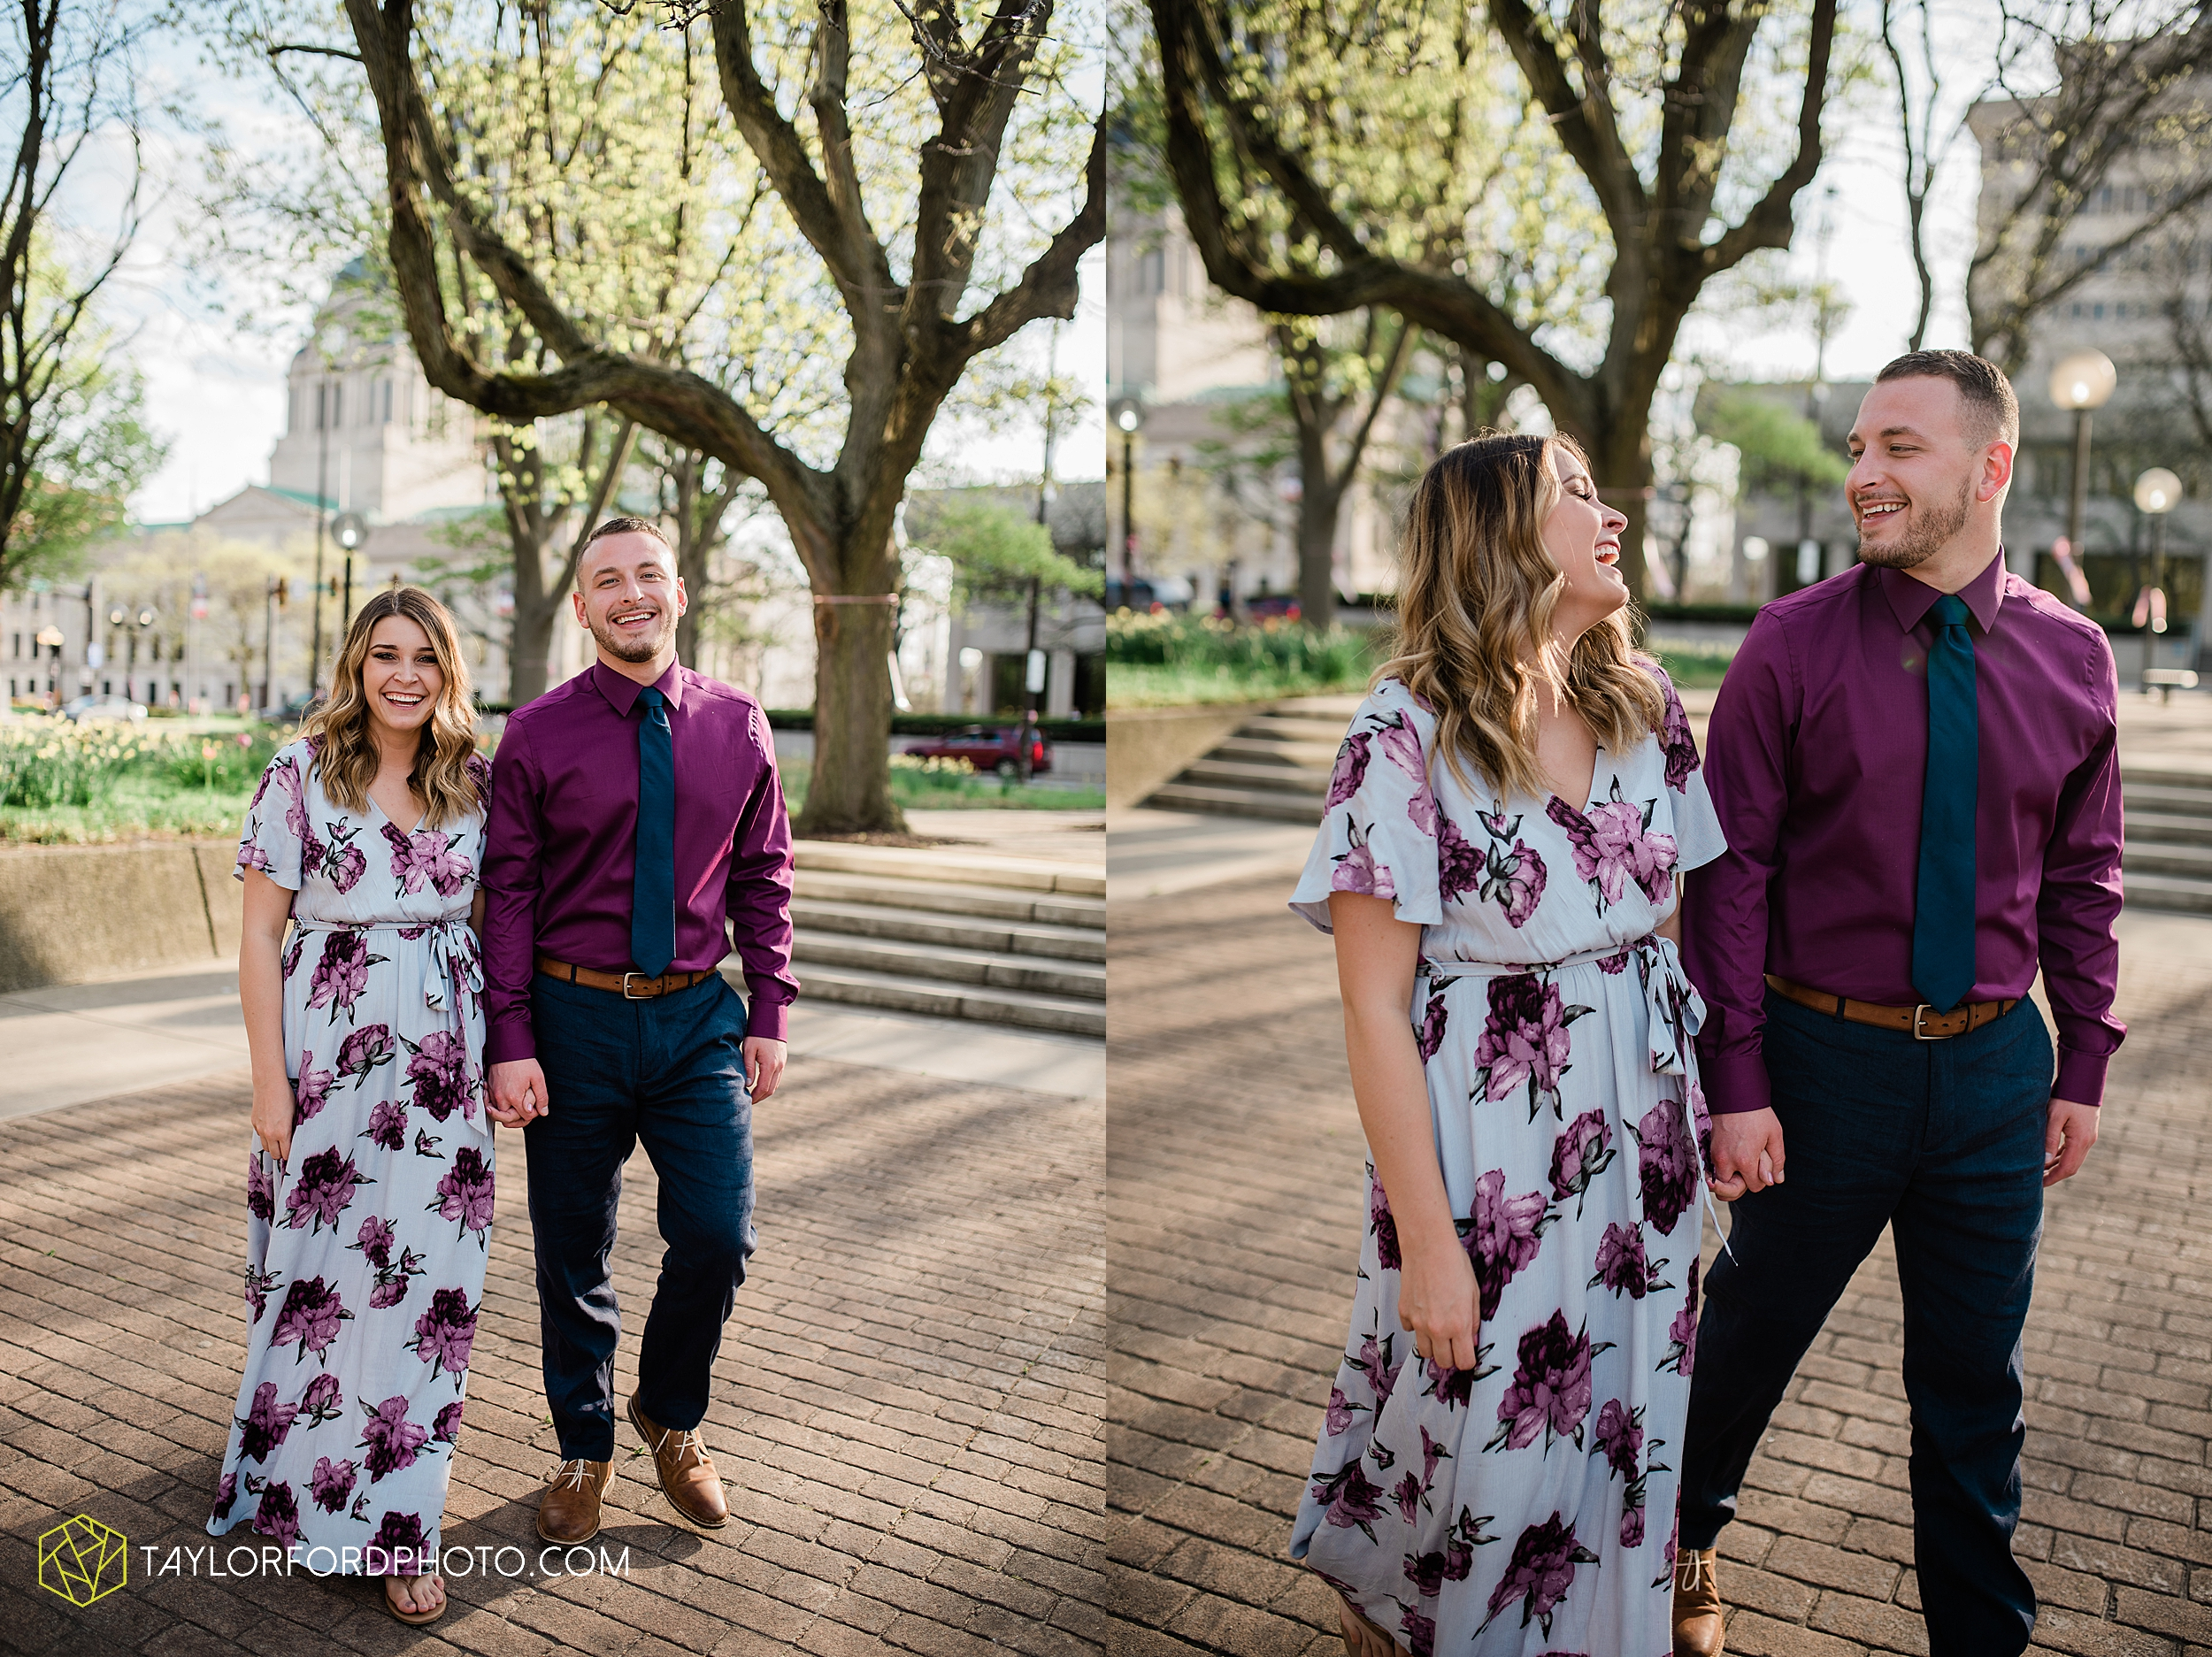 aly-taylor-downtown-fort-wayne-indiana-spring-engagement-photographer-photography-taylor-ford-hirschy-photographer_2584.jpg